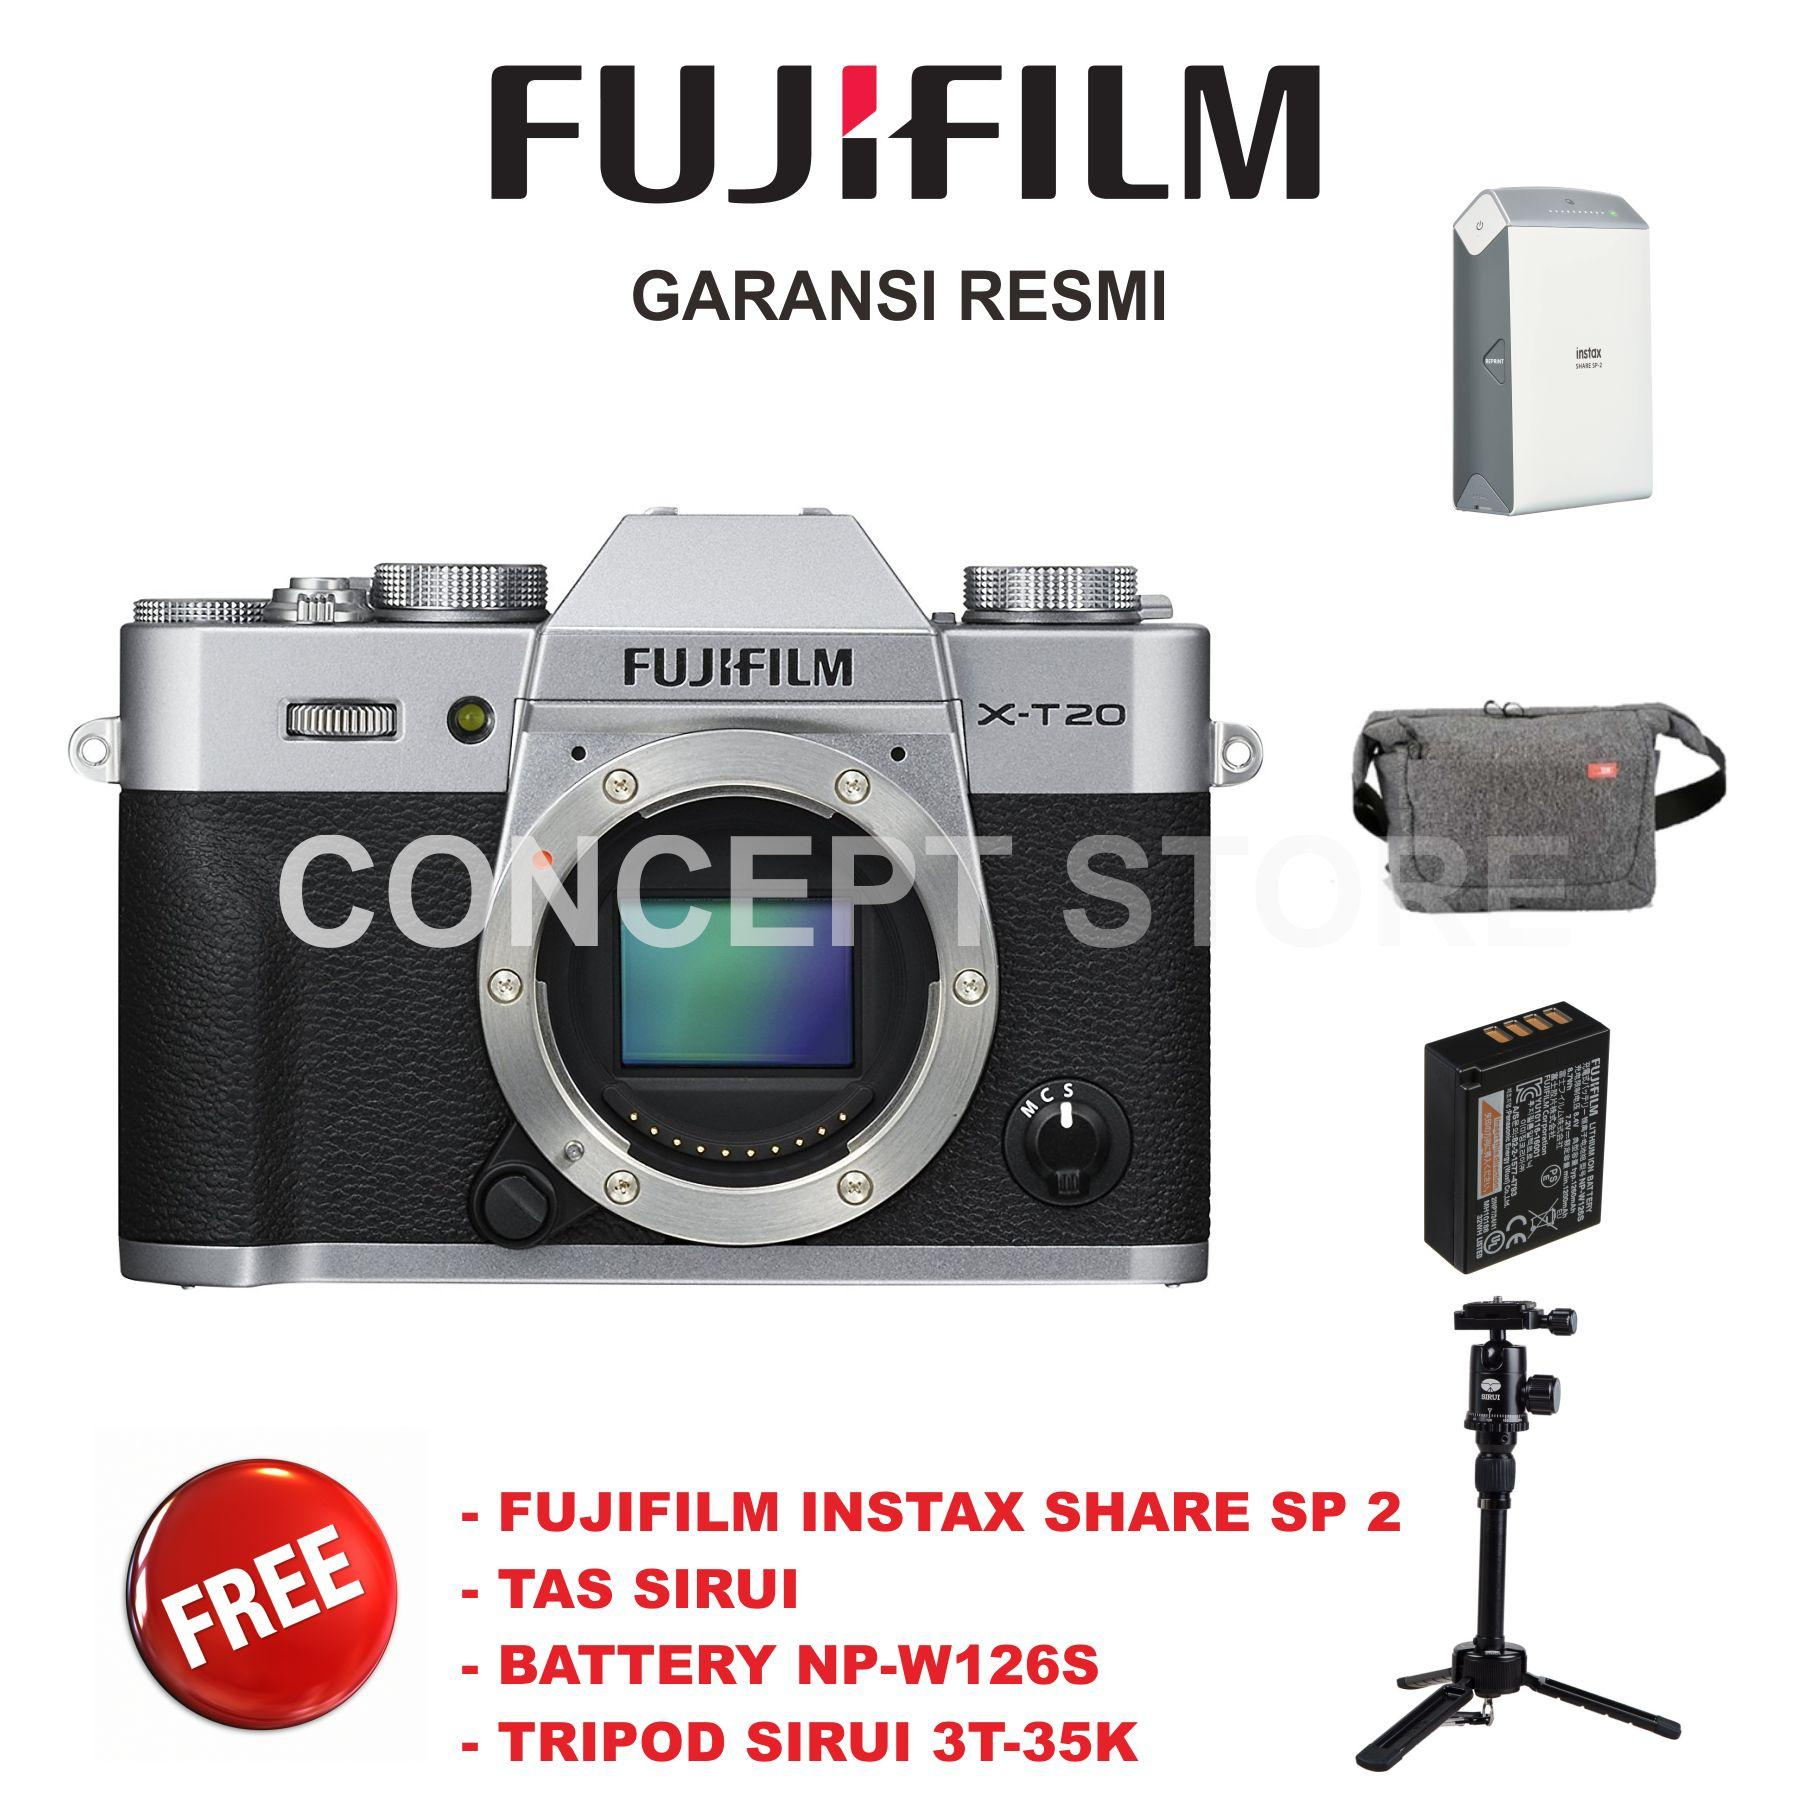 Tempat Jual 2017 Roundup Interchangeable Lens Cameras 900 1200 Fujifilm X T20 Kit Xf18 55mmblack Instax Share Sp2 Pwp Xf 35mm F 2 Buy Sell Cheapest Xt Best Quality Product Deals